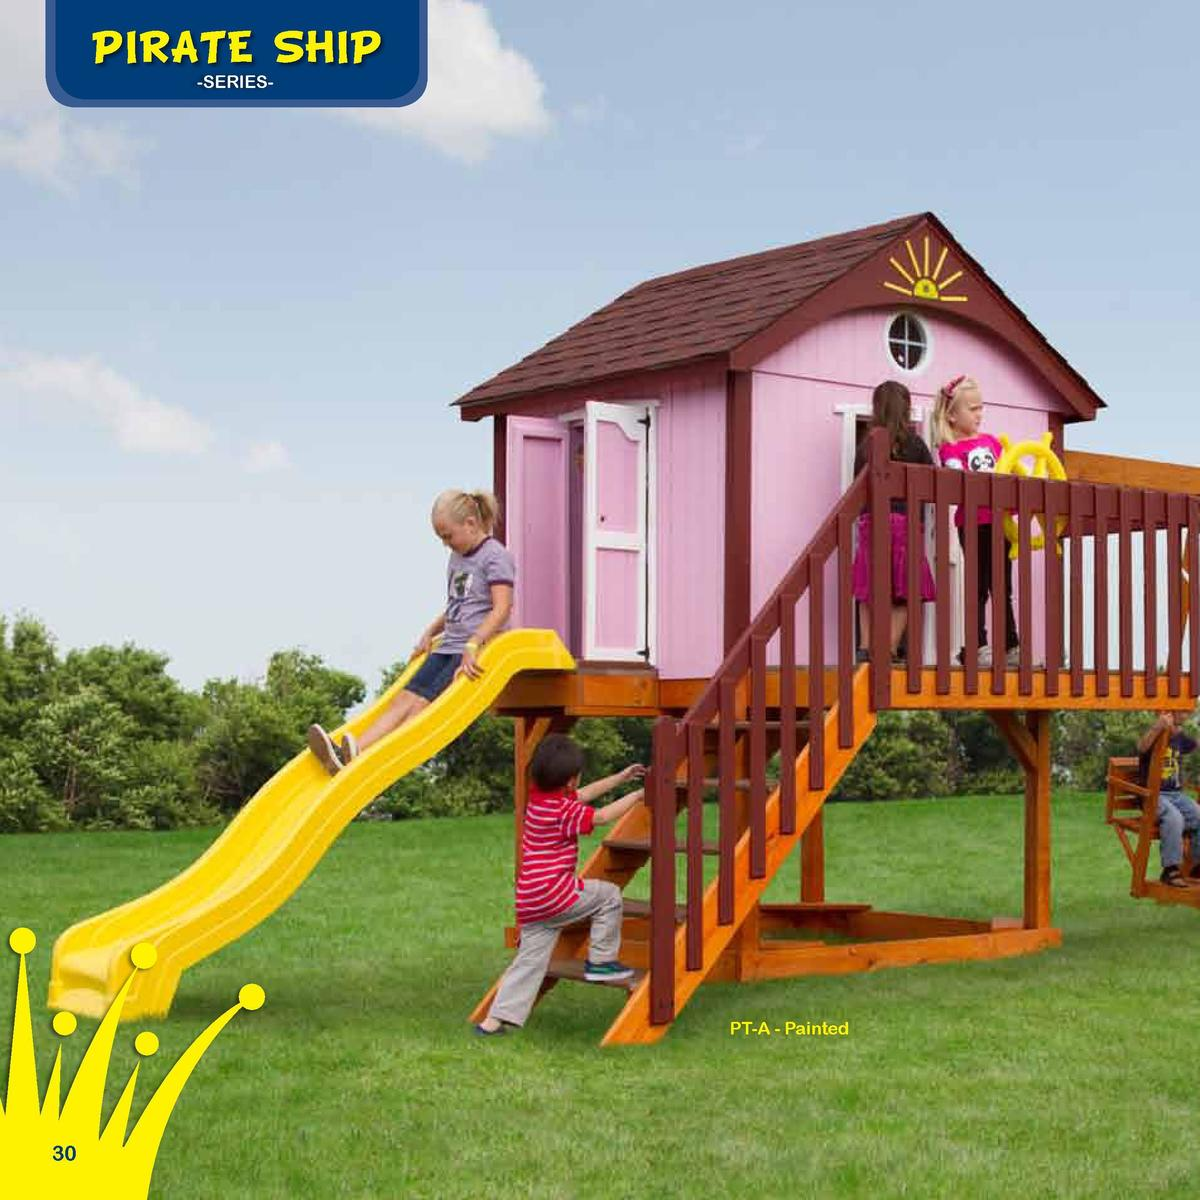 Playhouse Roofing  PIRATE SHIP  The Island Hideout  -SERIESAsphalt  Border Needed   Space Needed 100  Rubber Mulch Needed ...